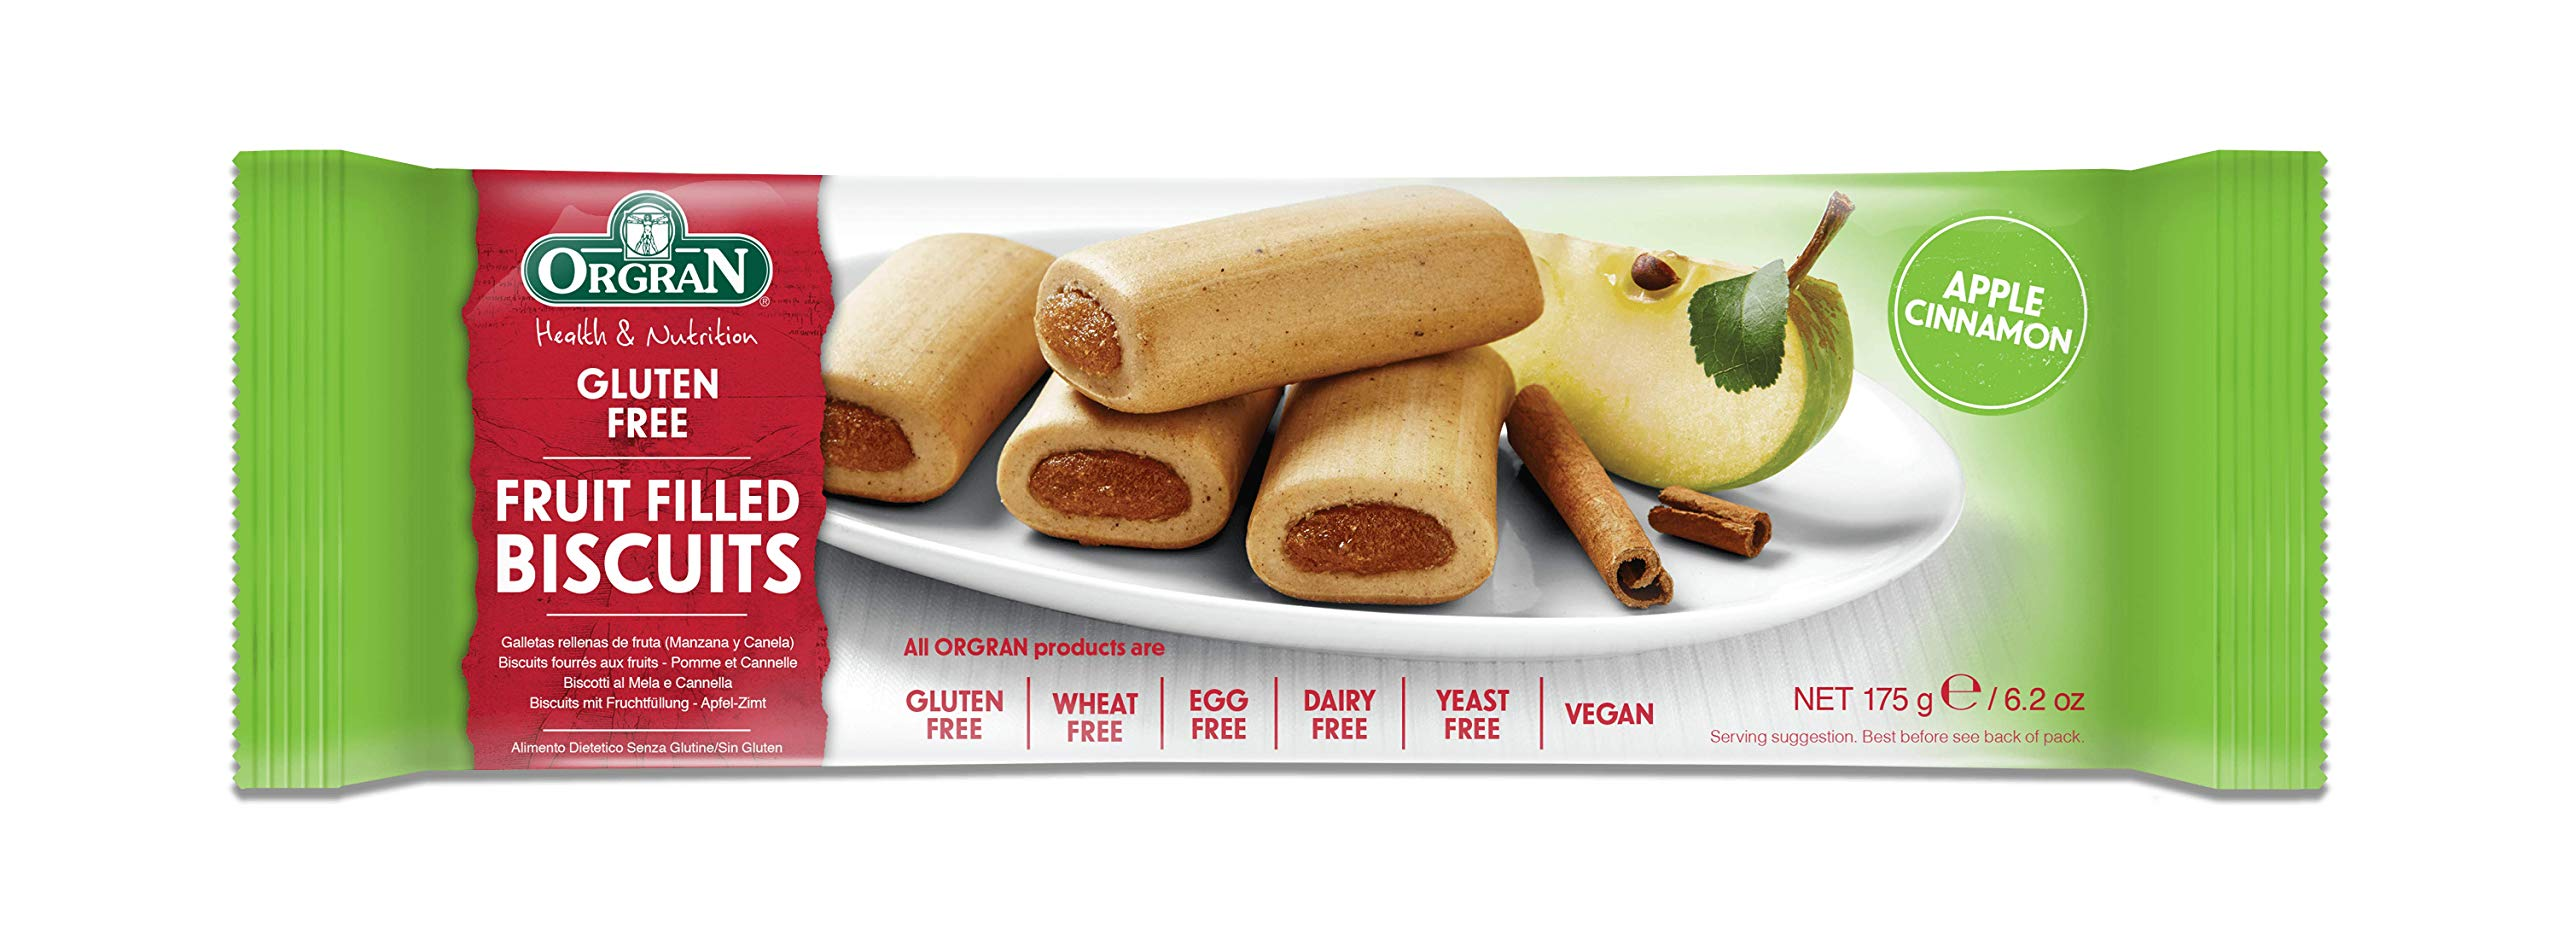 Orgran Apple & Cinnamon Fruit Filled Biscuits - Gluten Free, Wheat Free, Egg Free, Dairy Free, Yeast Free, Vegan, Soy Free, Kosher ( Case with 12 packs) by